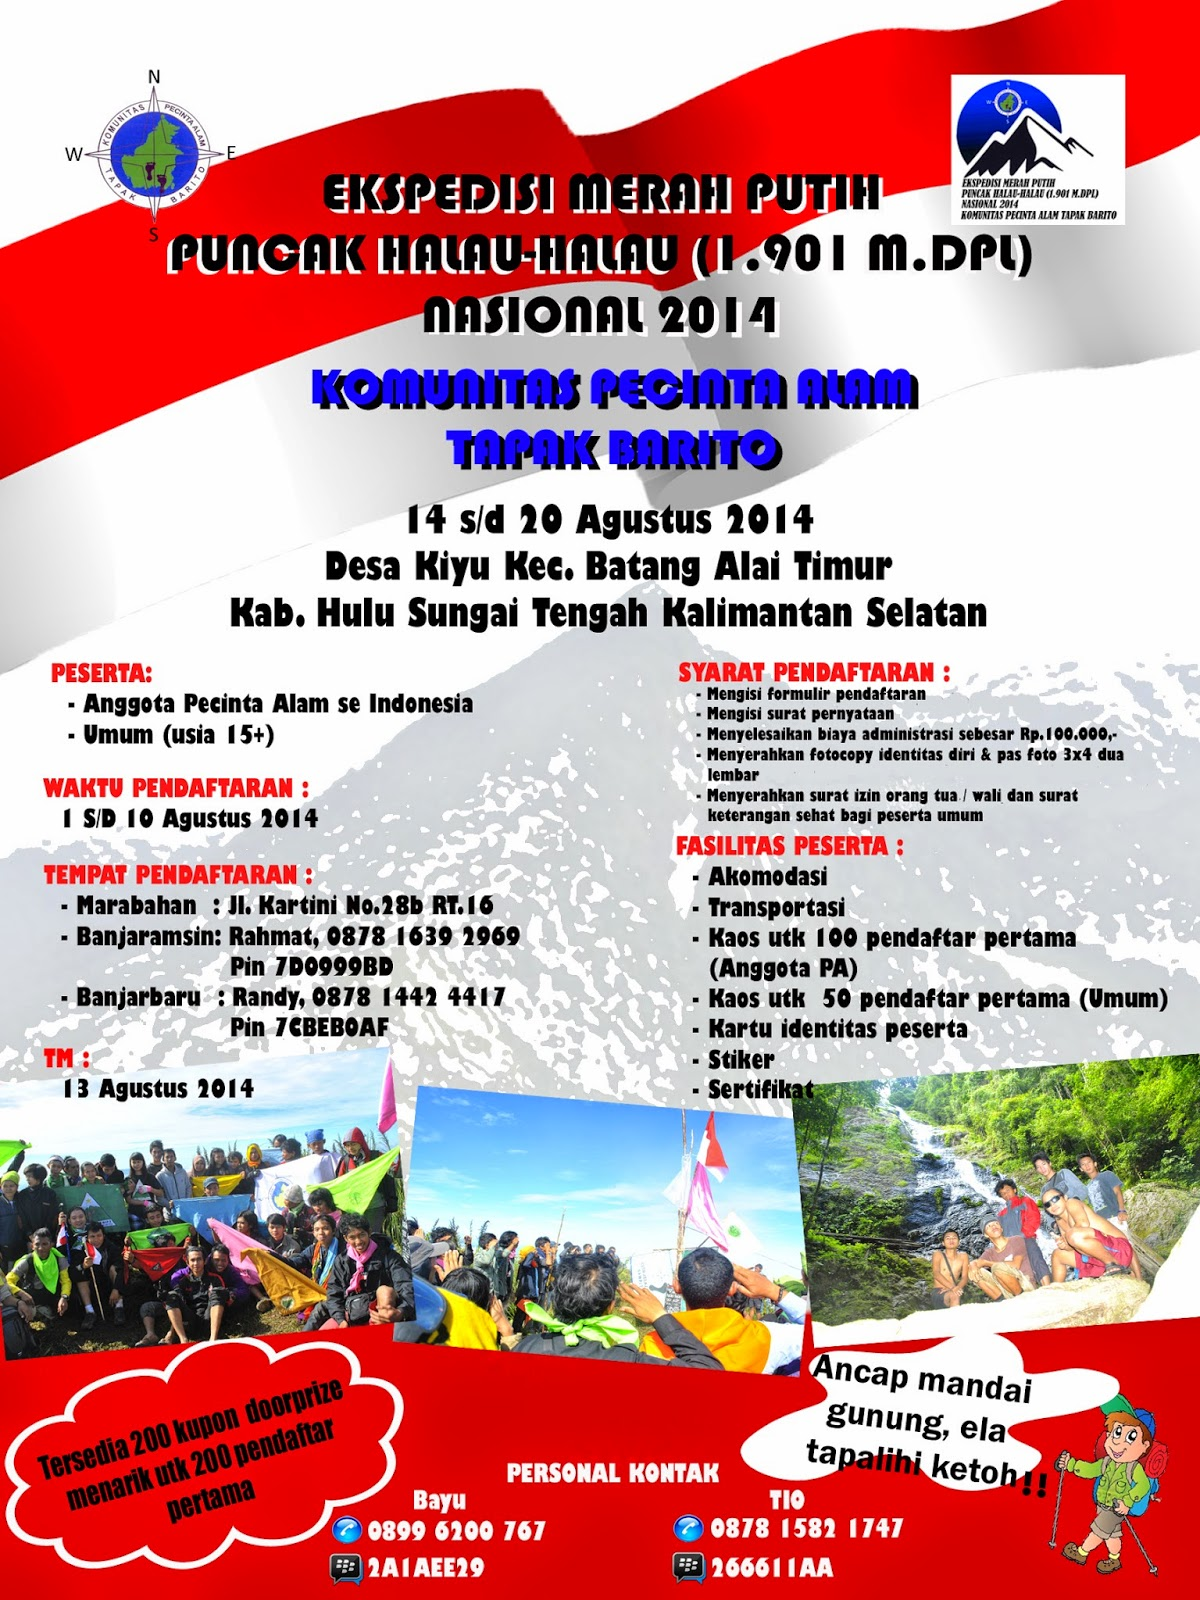 Merah Putih Expedition 2014